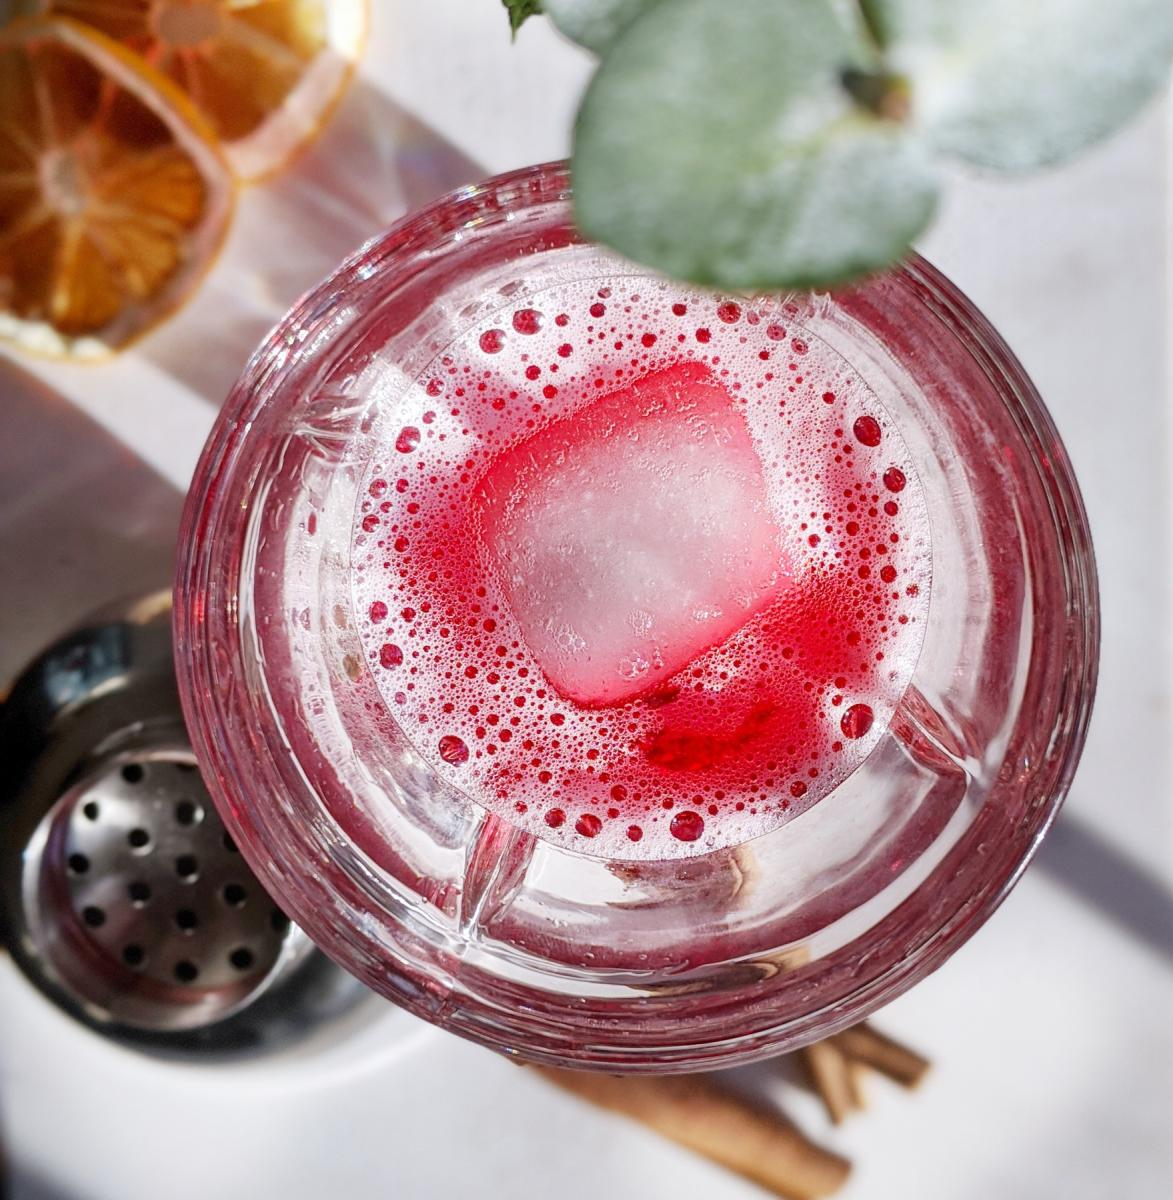 Looking for tasty mocktails? Check out this local option, featuring Hibiscus Cherry with Siren Shrub.